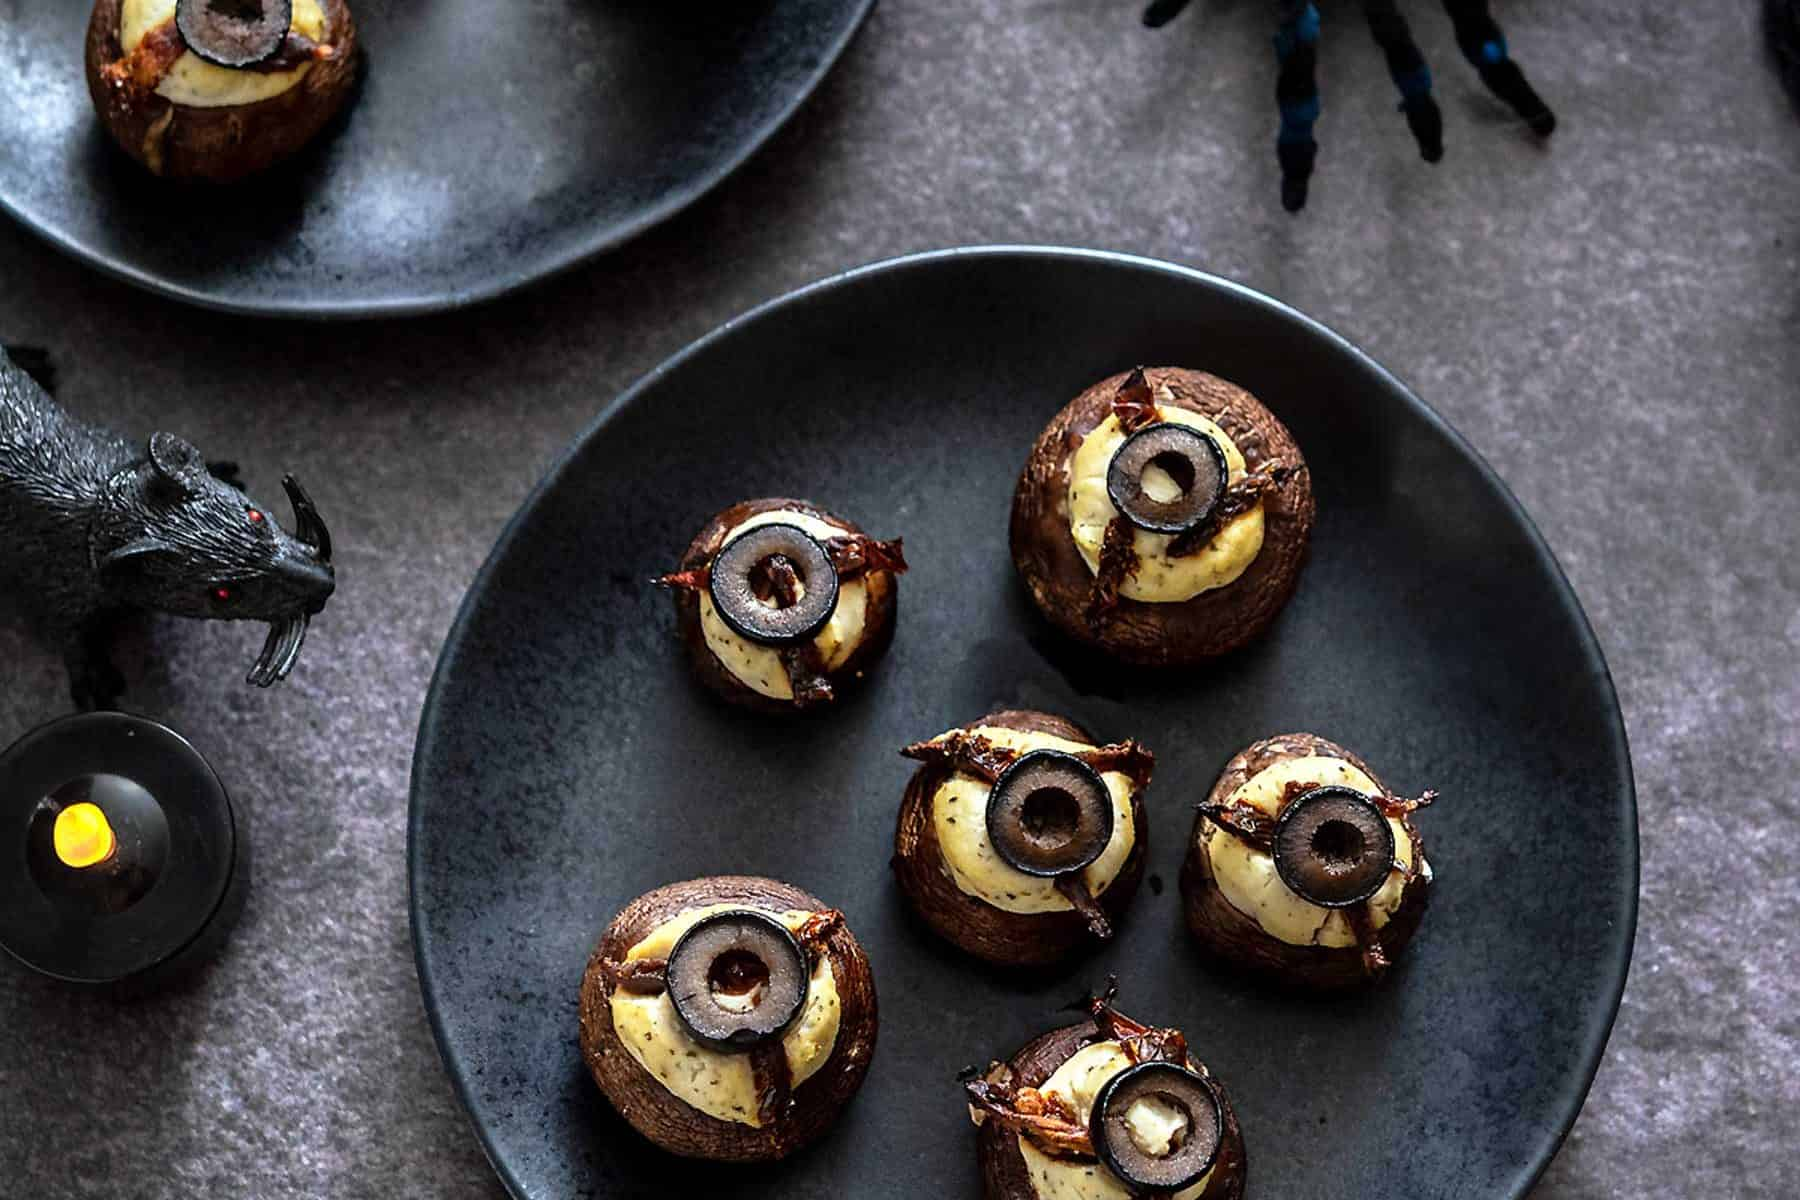 Tofu-Stuffed mushrooms on black plates with halloween decorations